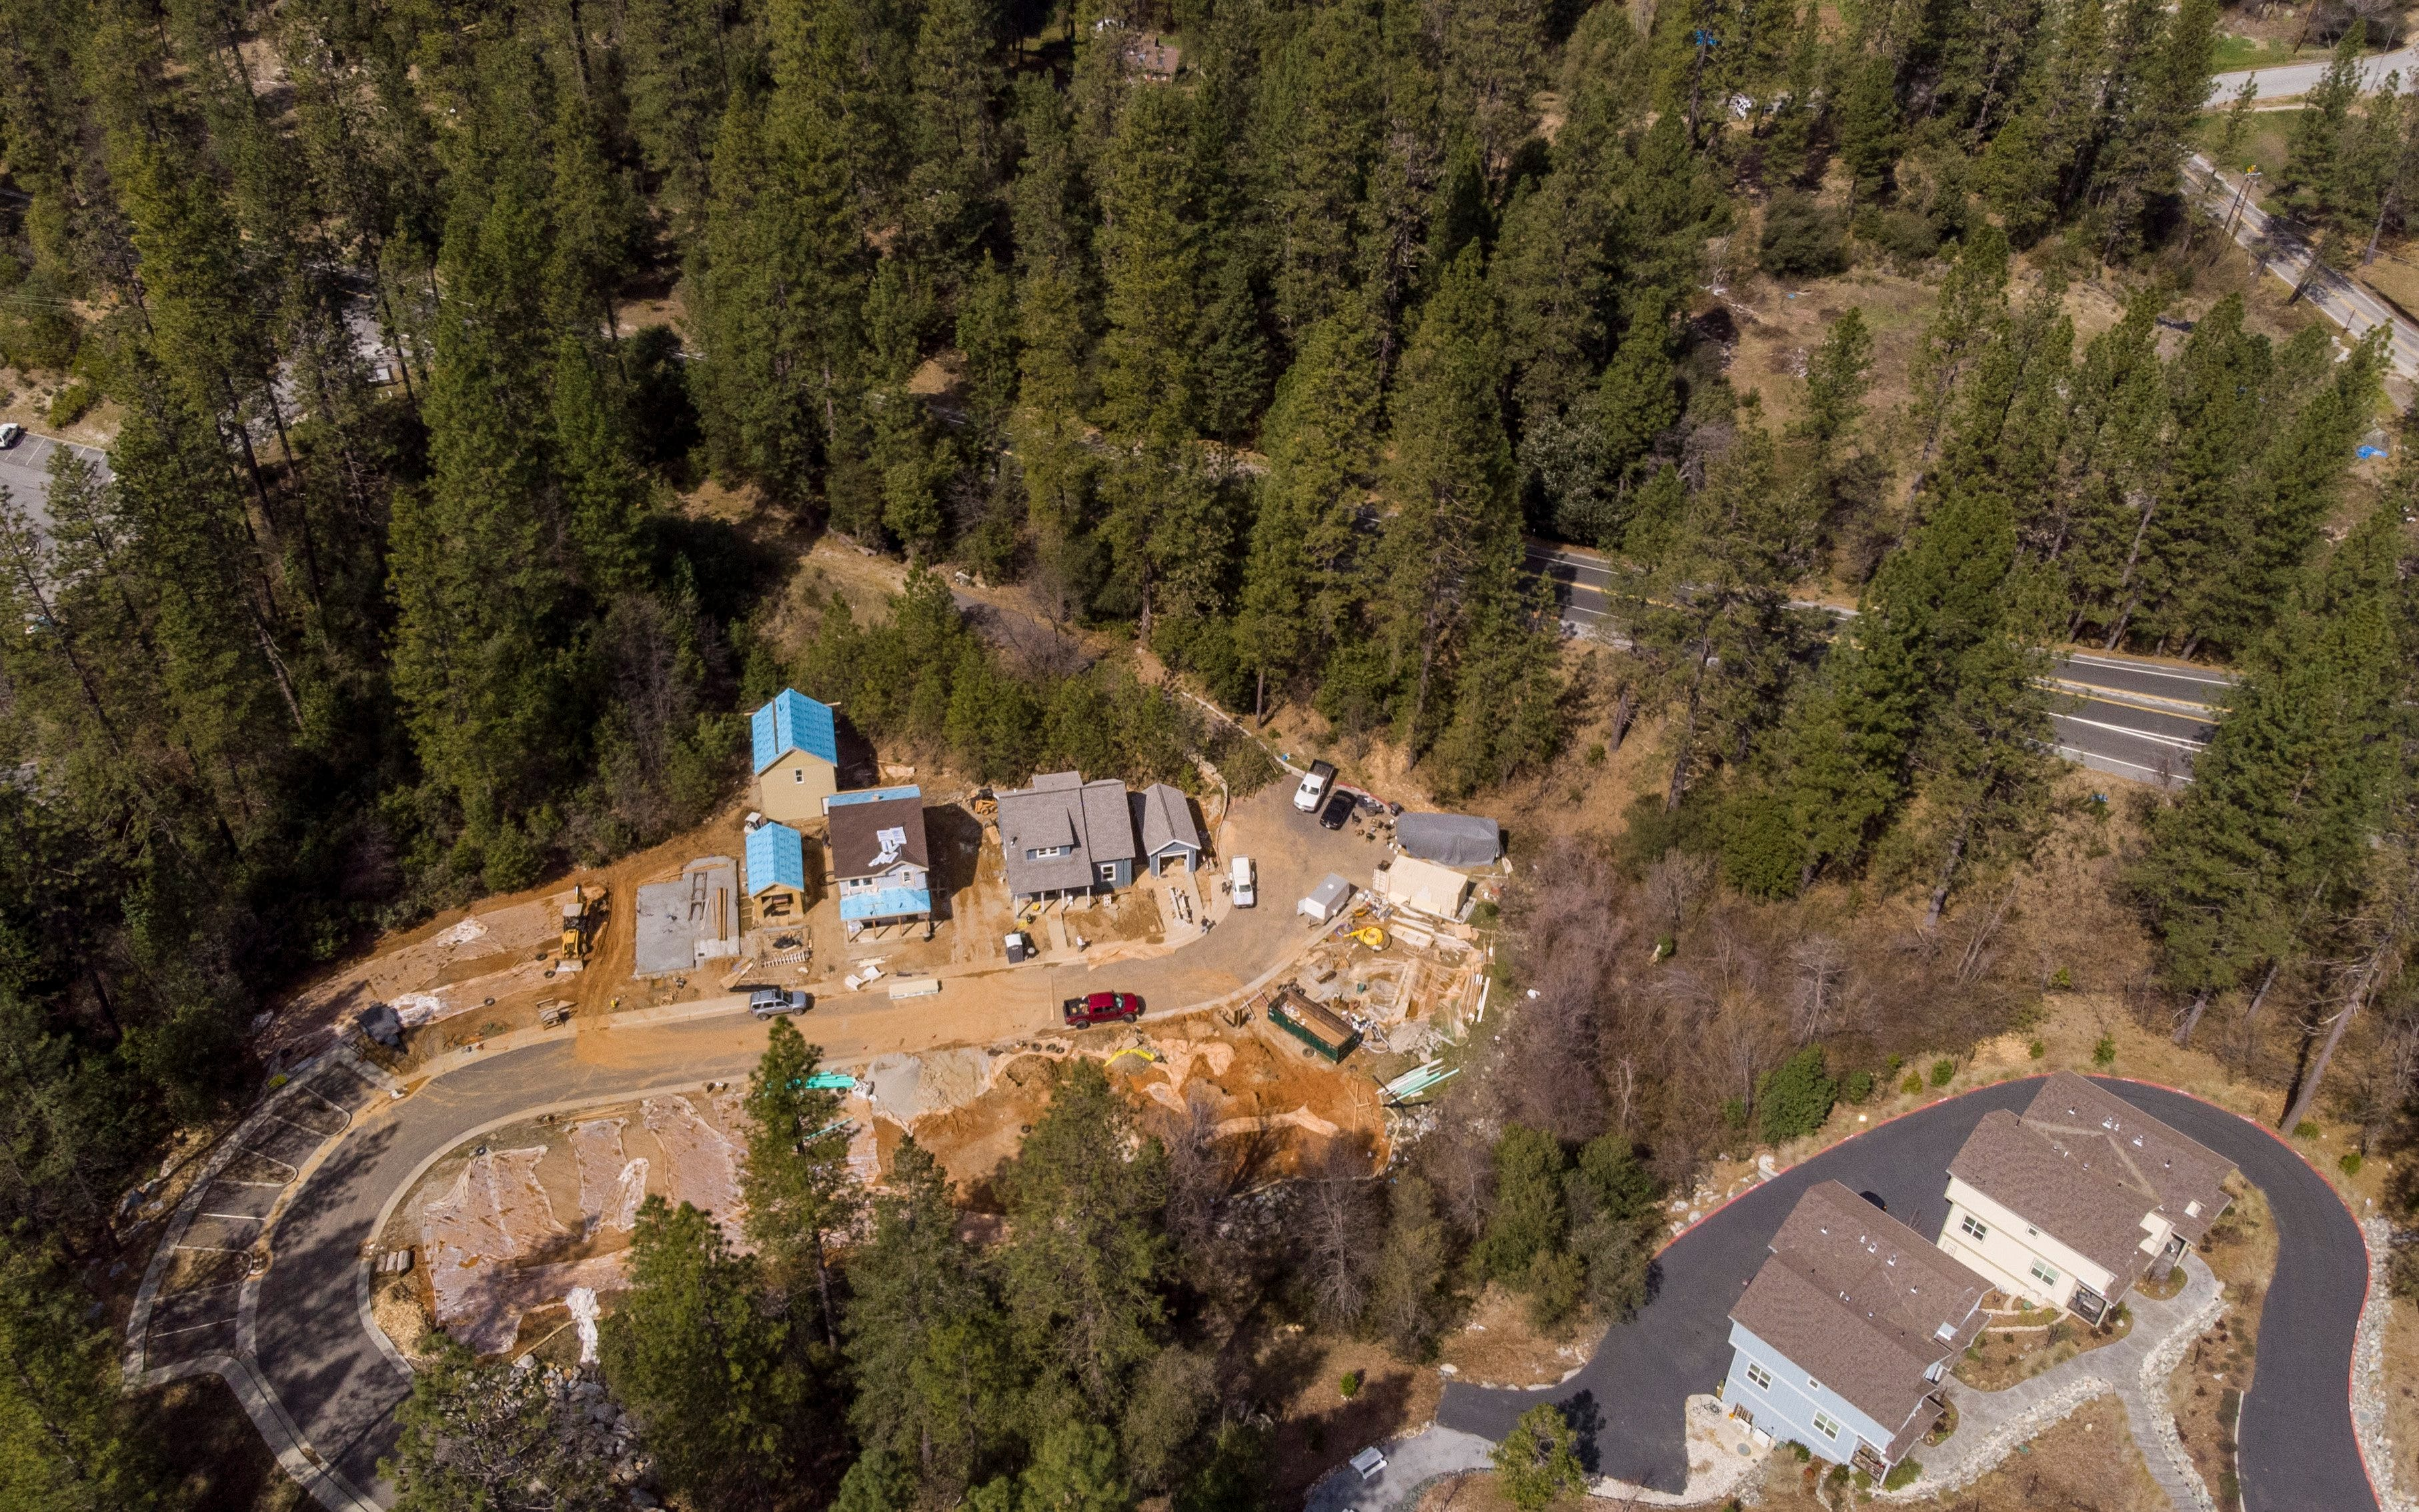 A housing development off Chief Kelly Drive in Nevada City is under construction on Thursday, March 14, 2019. California cities continue to build homes in areas of high wildfire risk.